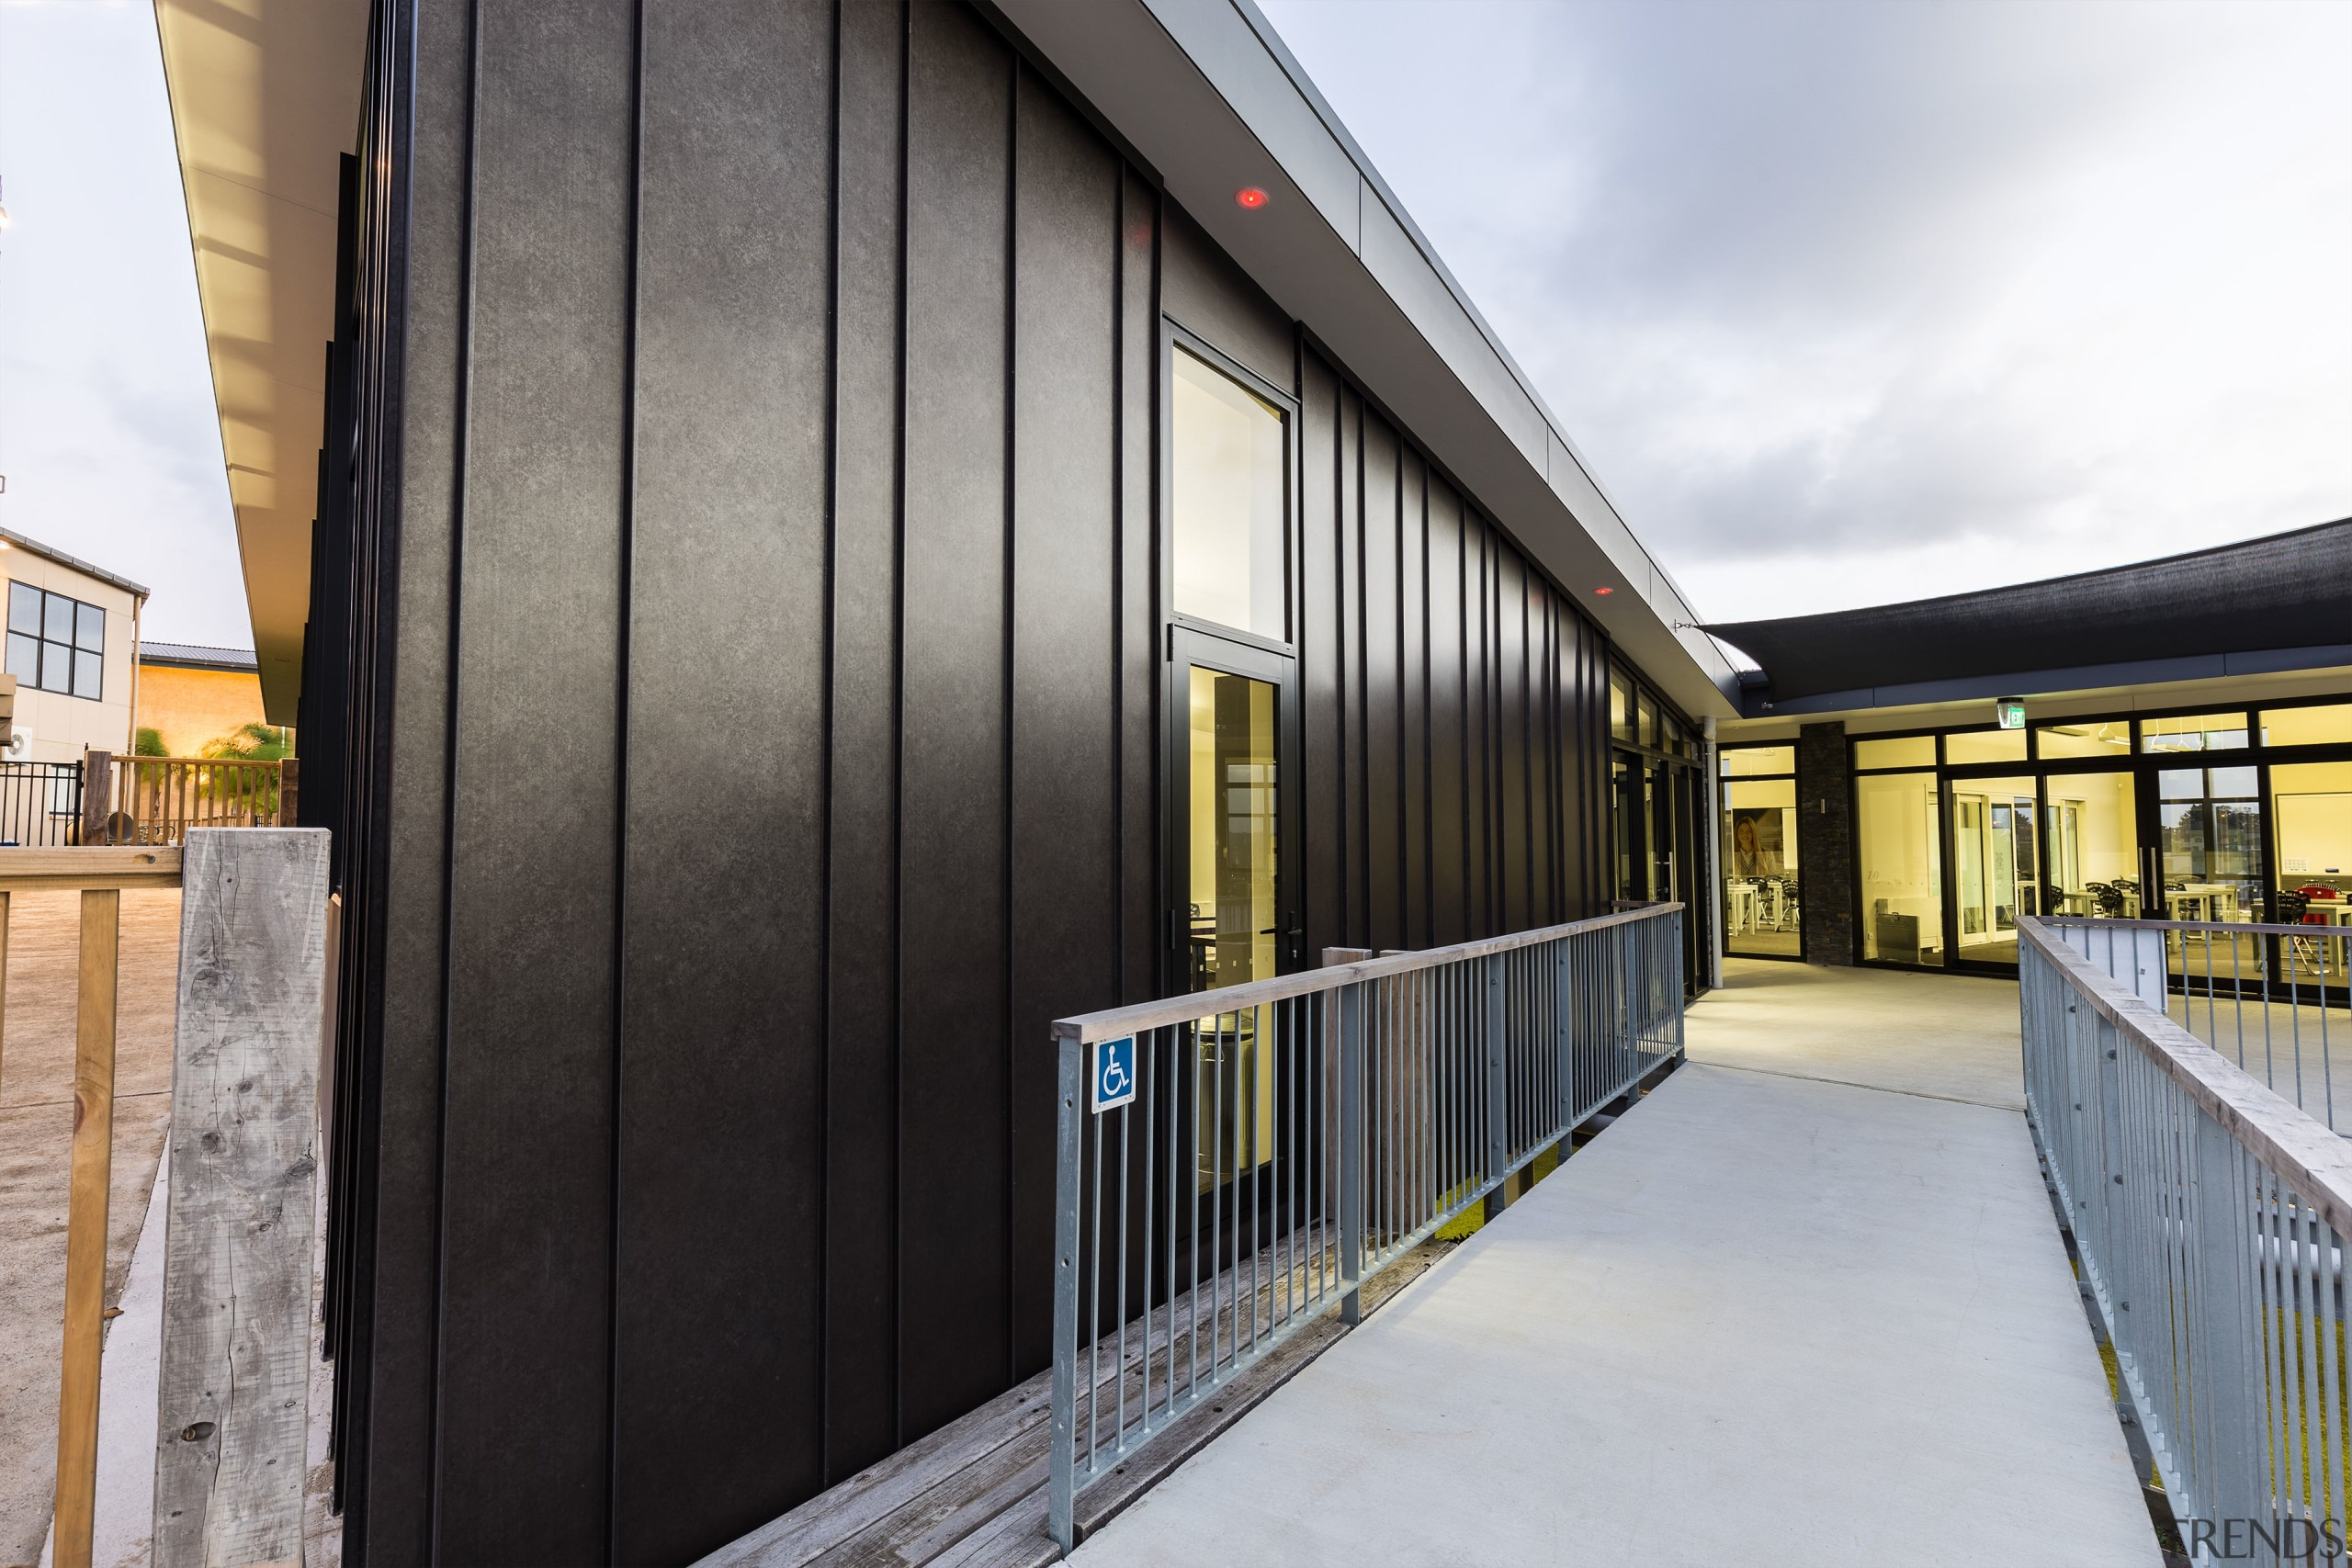 The panelling between the standing seam elements on architecture, building, facade, house, real estate, gray, black, white